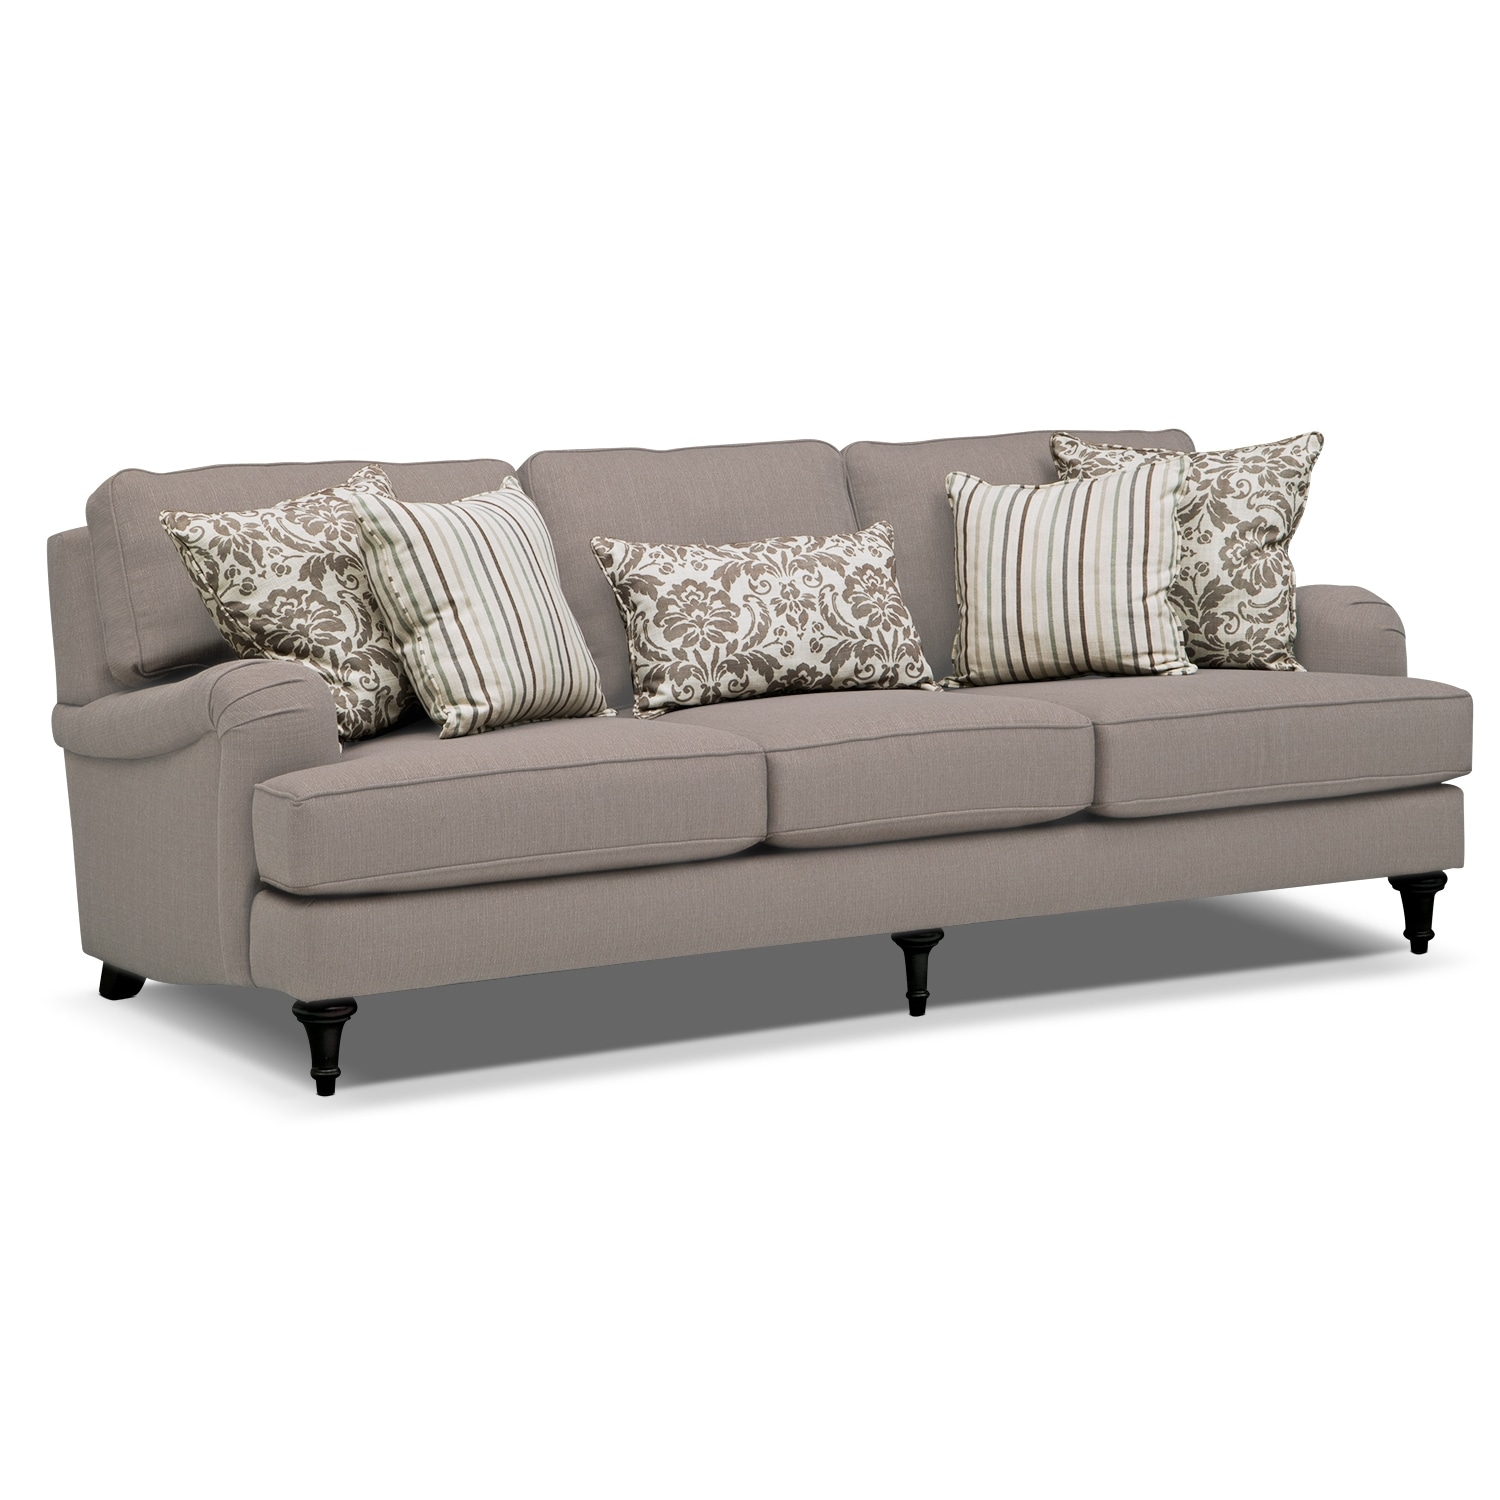 Candice sofa value city furniture for I living furniture